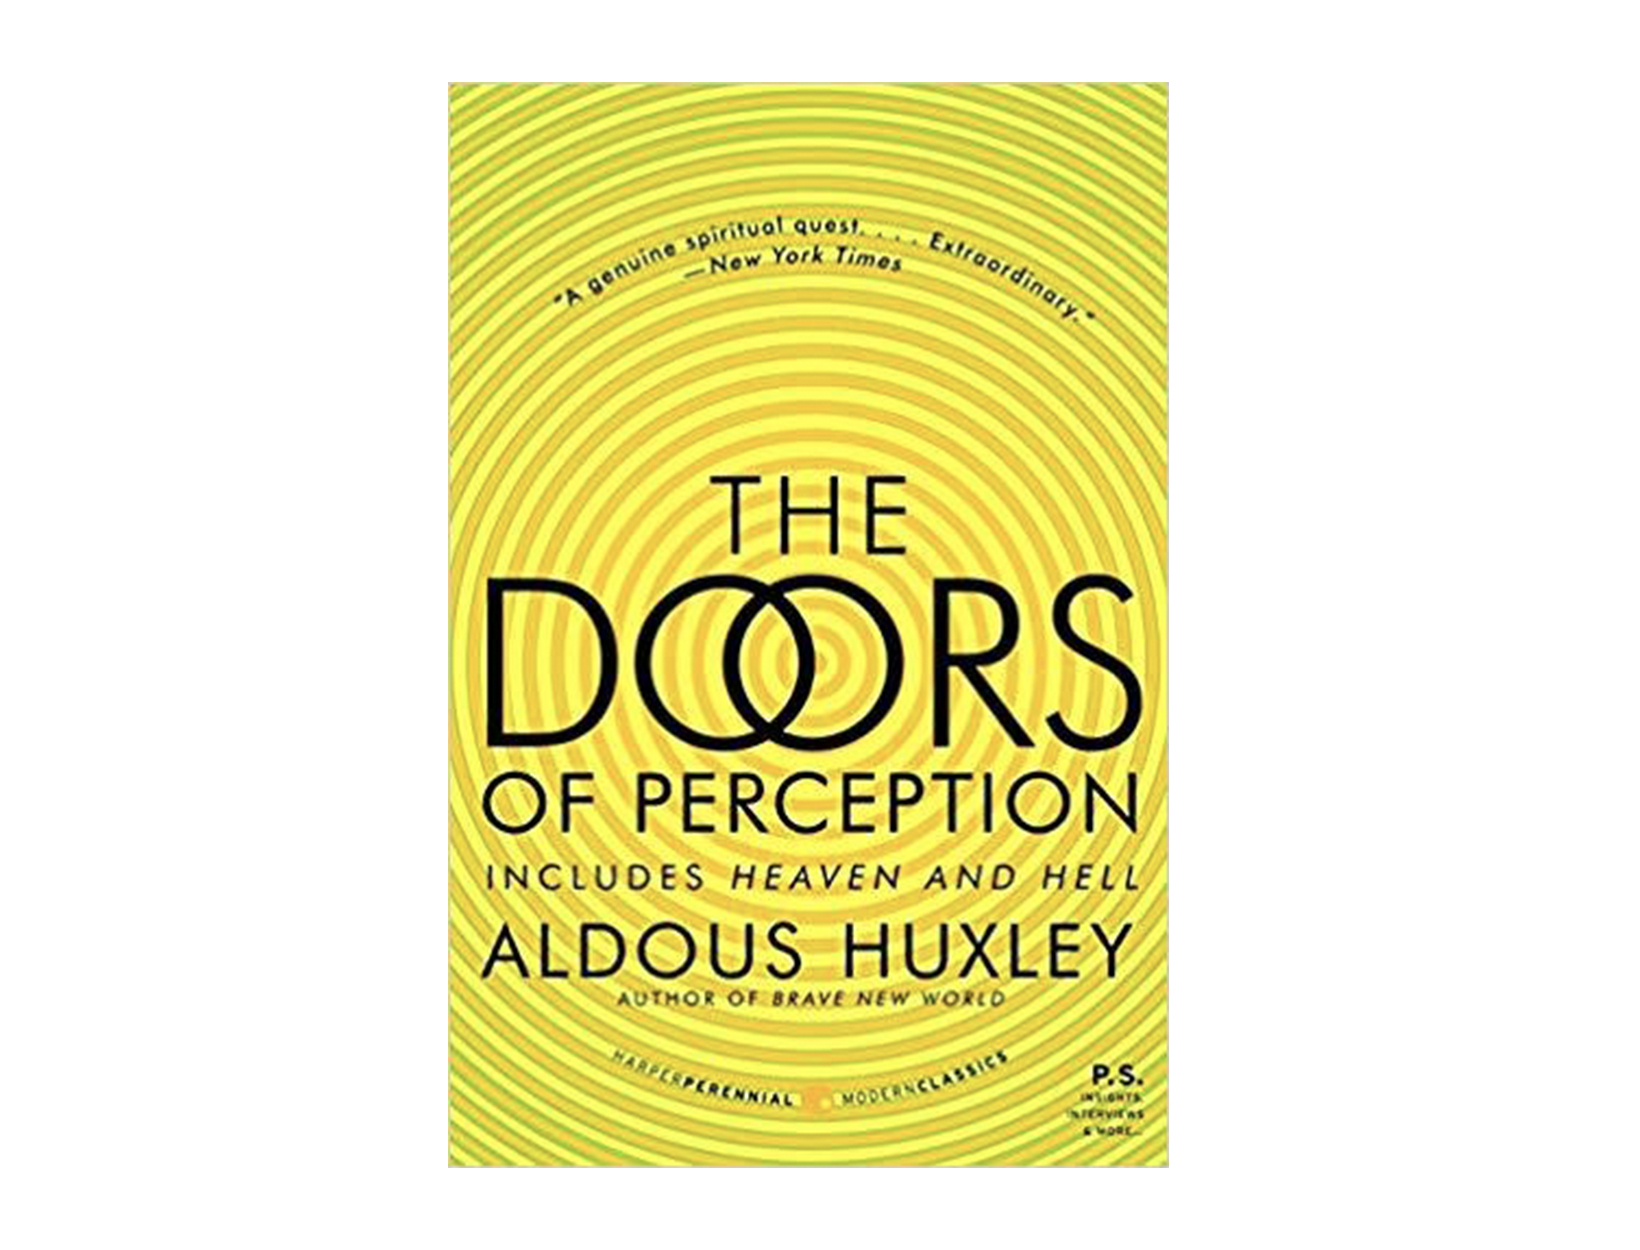 <em>The Doors of Perception</em> by Aldous Huxley